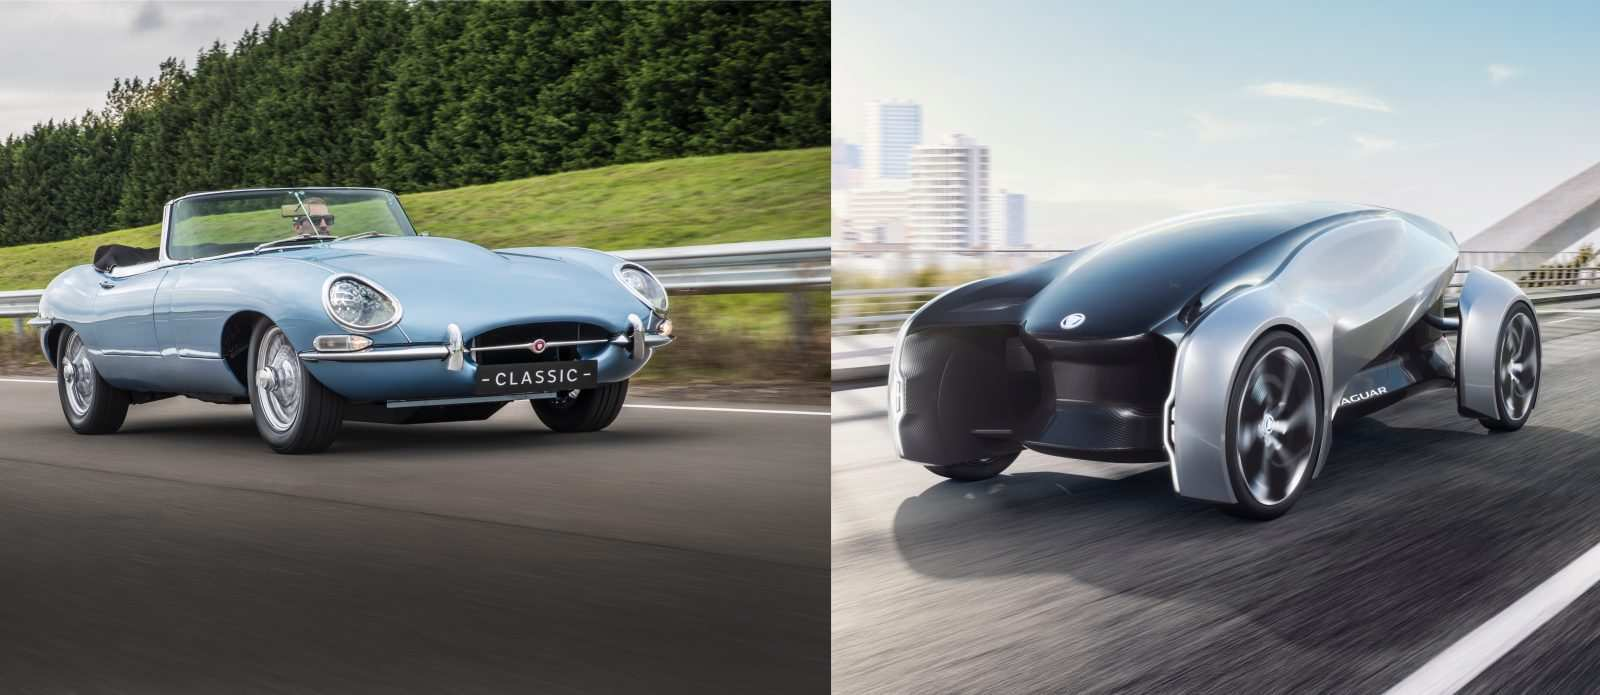 70 Concept of 2020 Jaguar Electric Images by 2020 Jaguar Electric